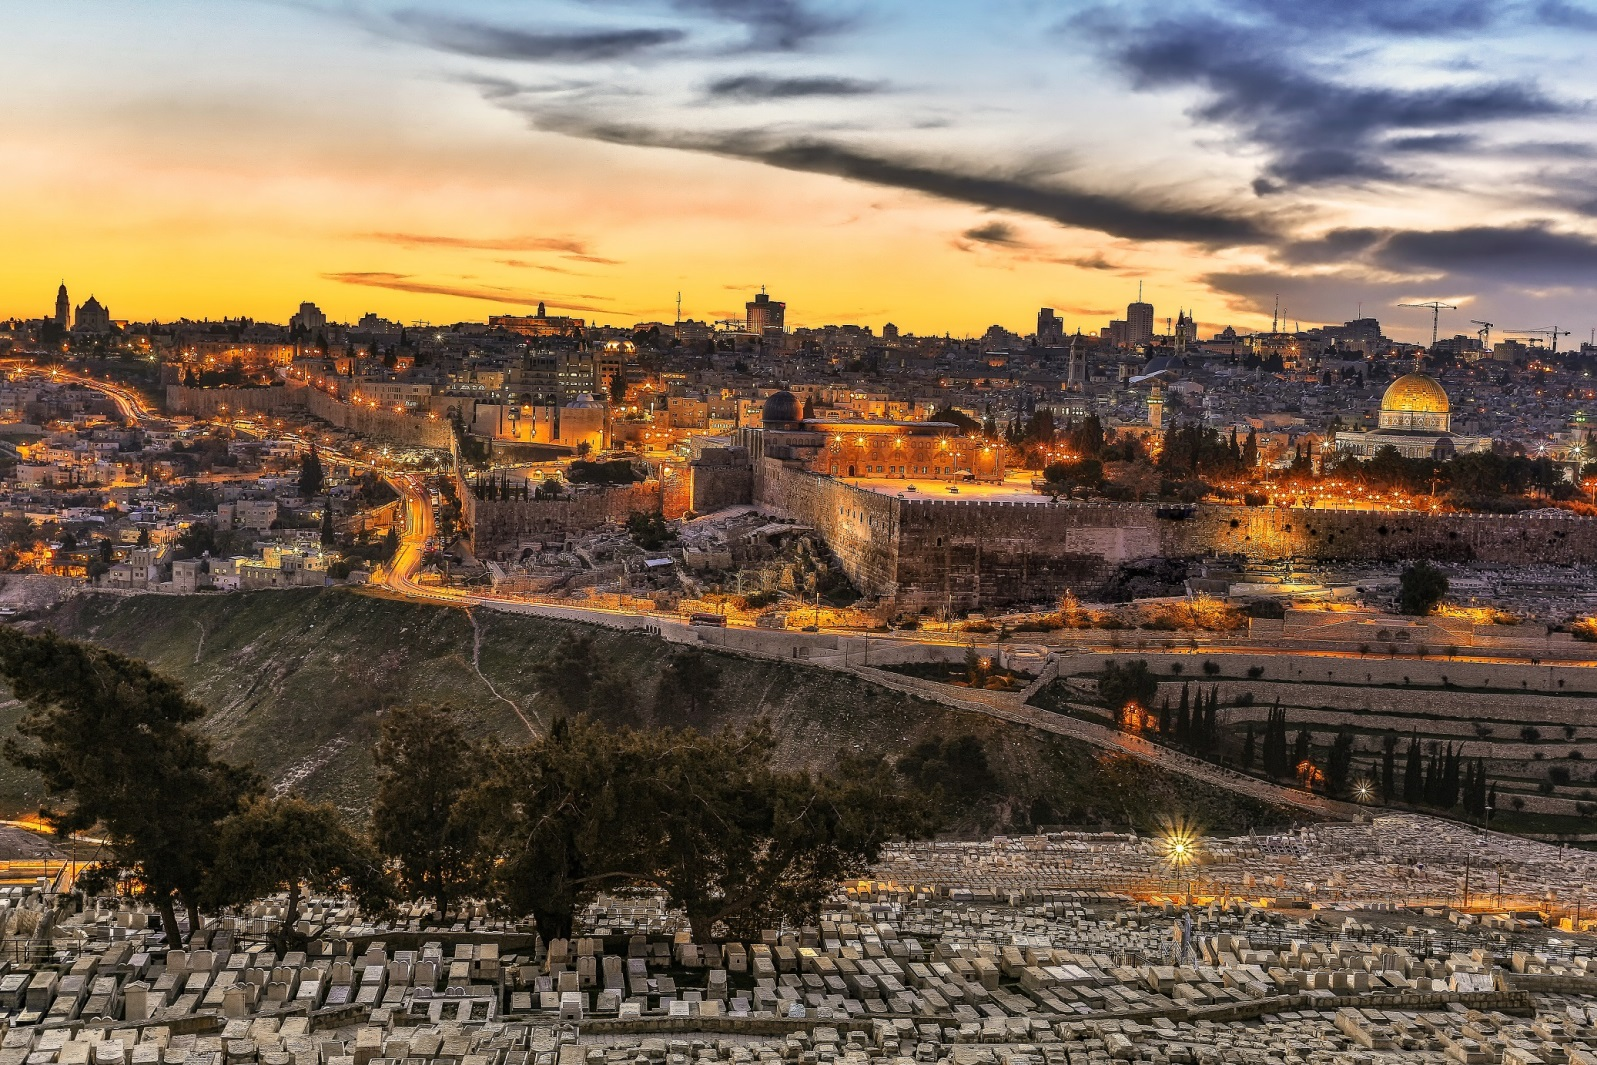 """Jerusalem of Gold by Michael Shmidt is among the most popular JerusaLENS photos."